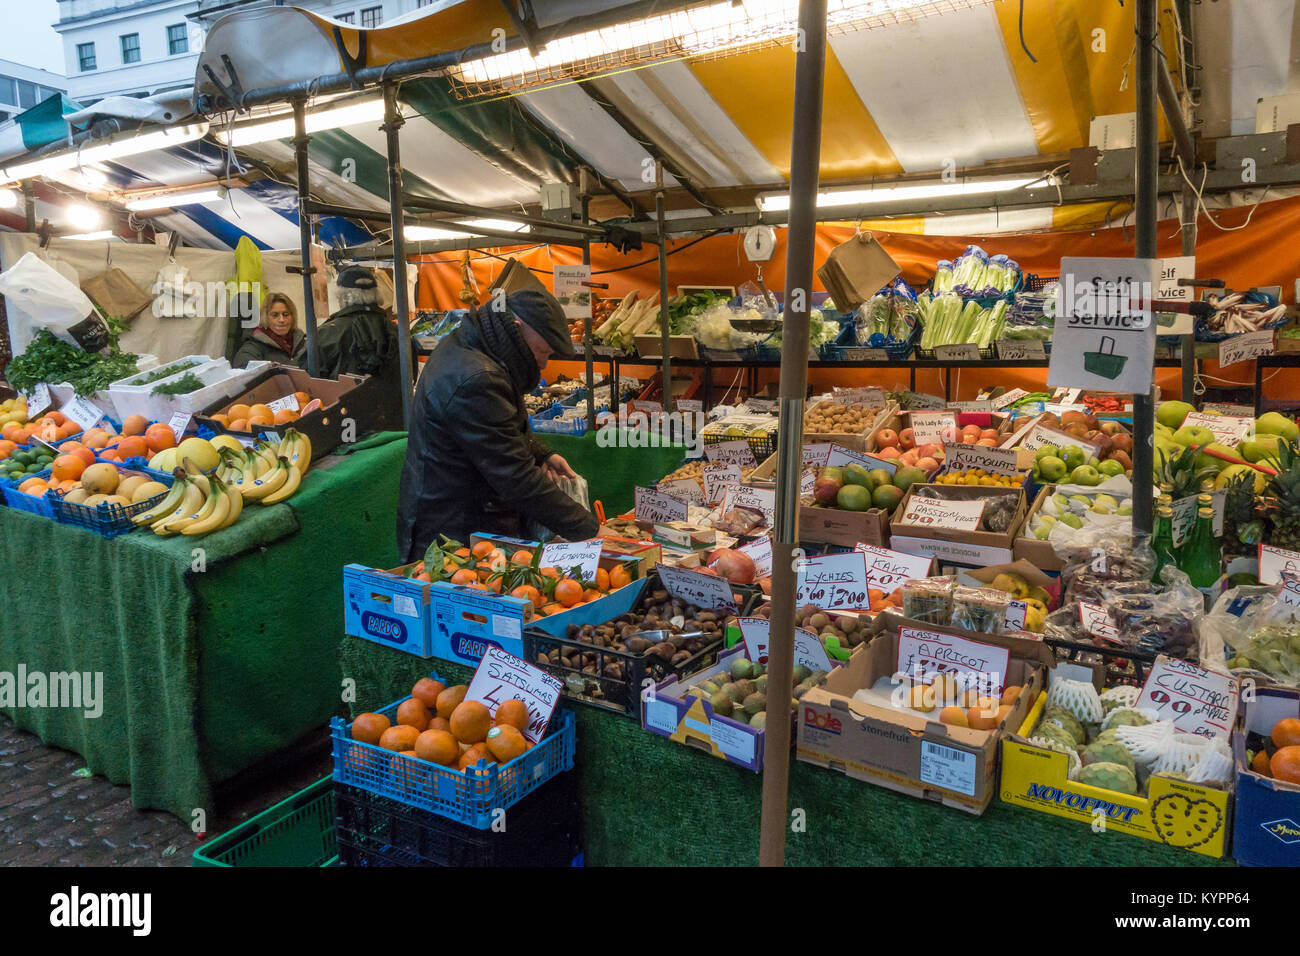 self-service-green-grocer-stall-market-hill-cambridge-cambridgeshire-KYPP64.jpg